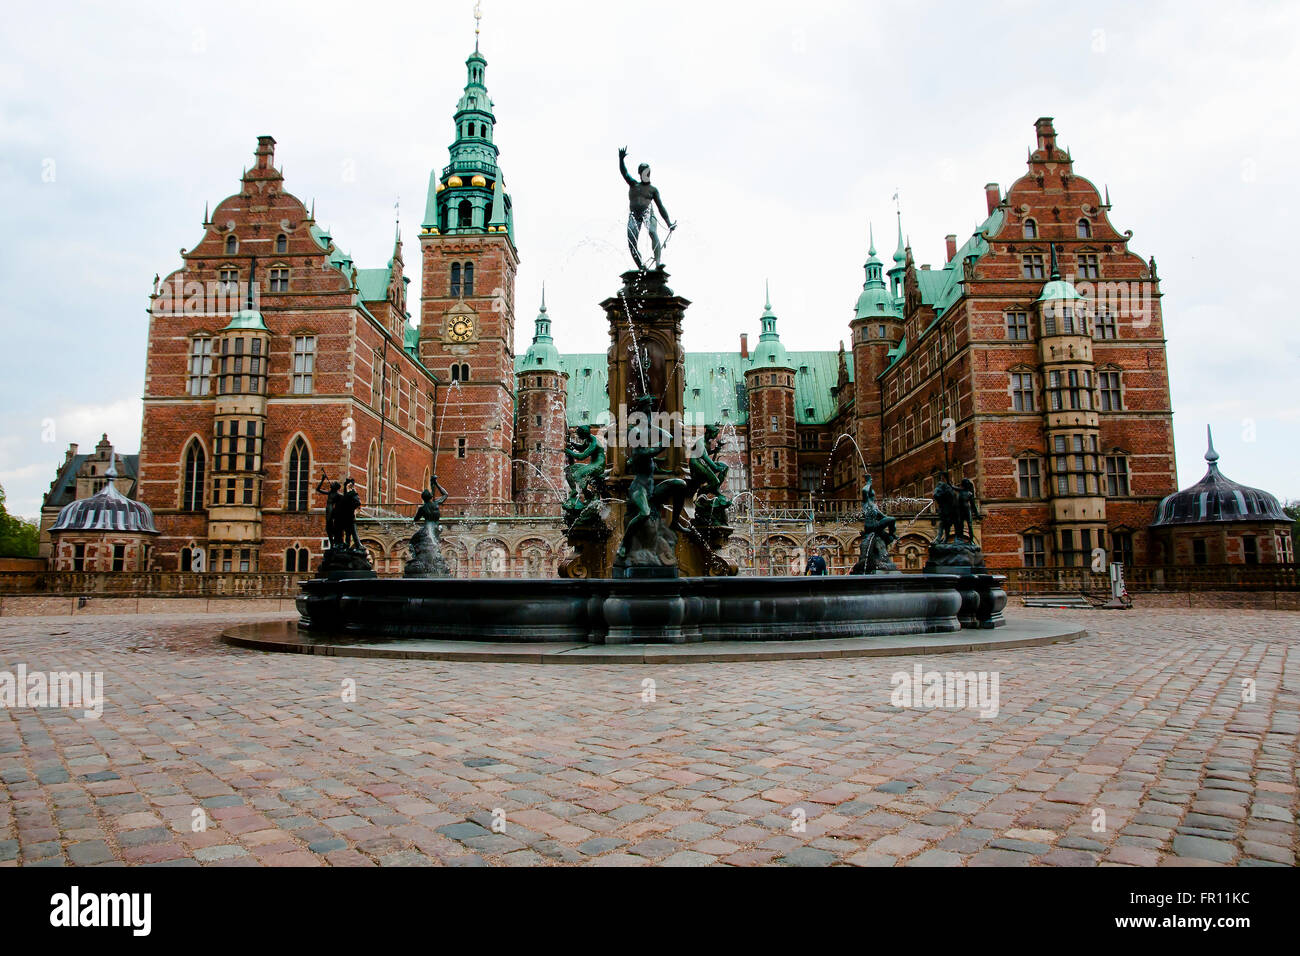 Fountain of Frederiksborg Castle - Hillerod - Denmark - Stock Image